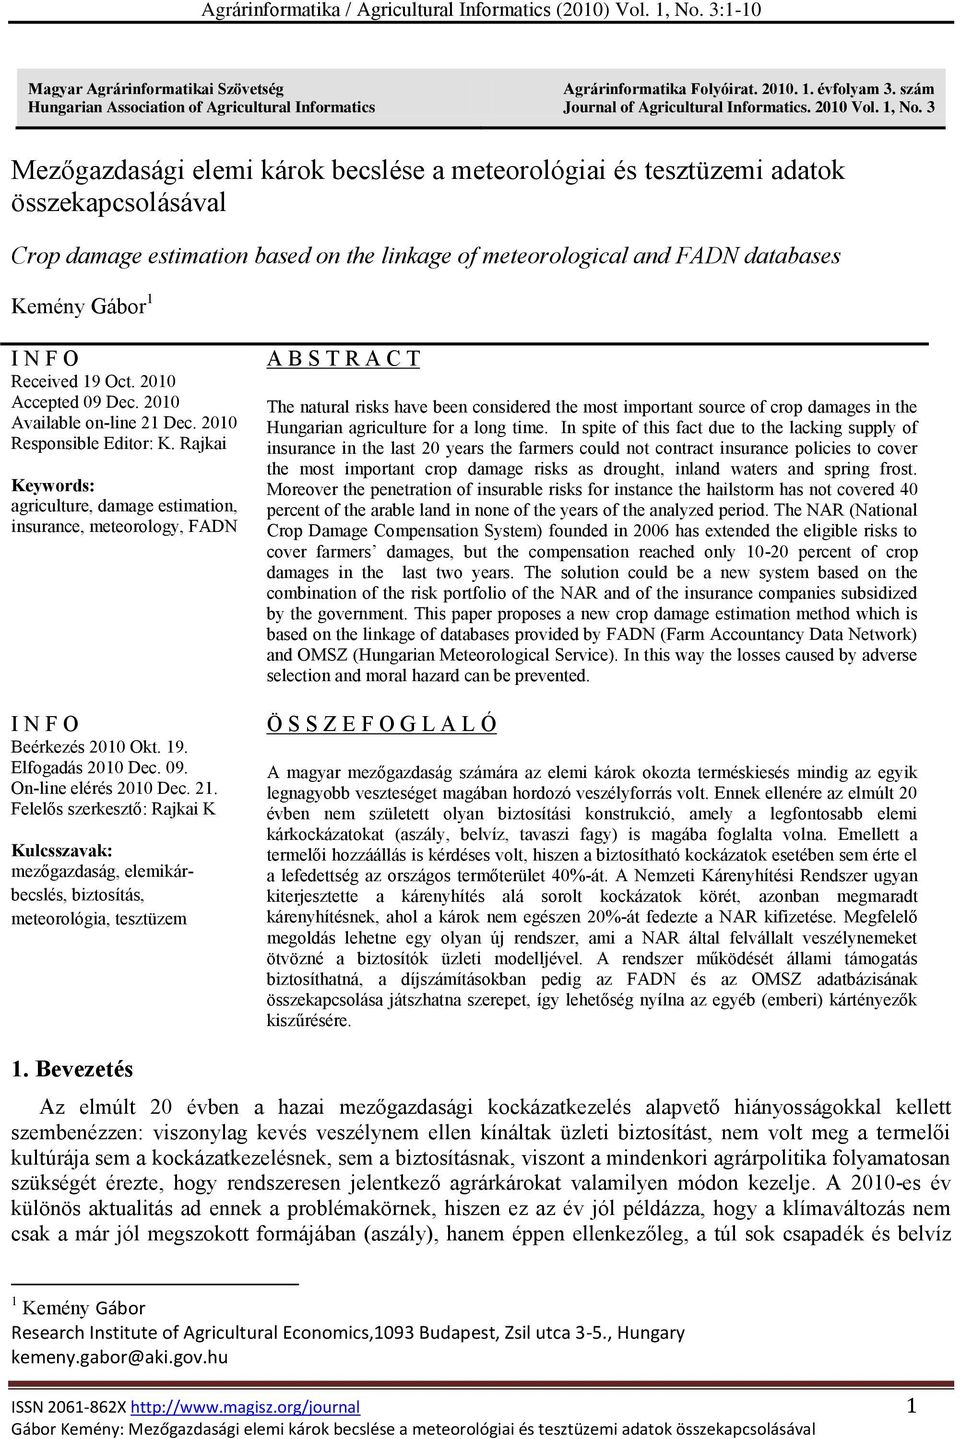 3 Mezőgazdasági elemi károk becslése a meteorológiai és tesztüzemi adatok összekapcsolásával Crop damage estimation based on the linkage of meteorological and FADN databases Kemény Gábor 1 I N F O